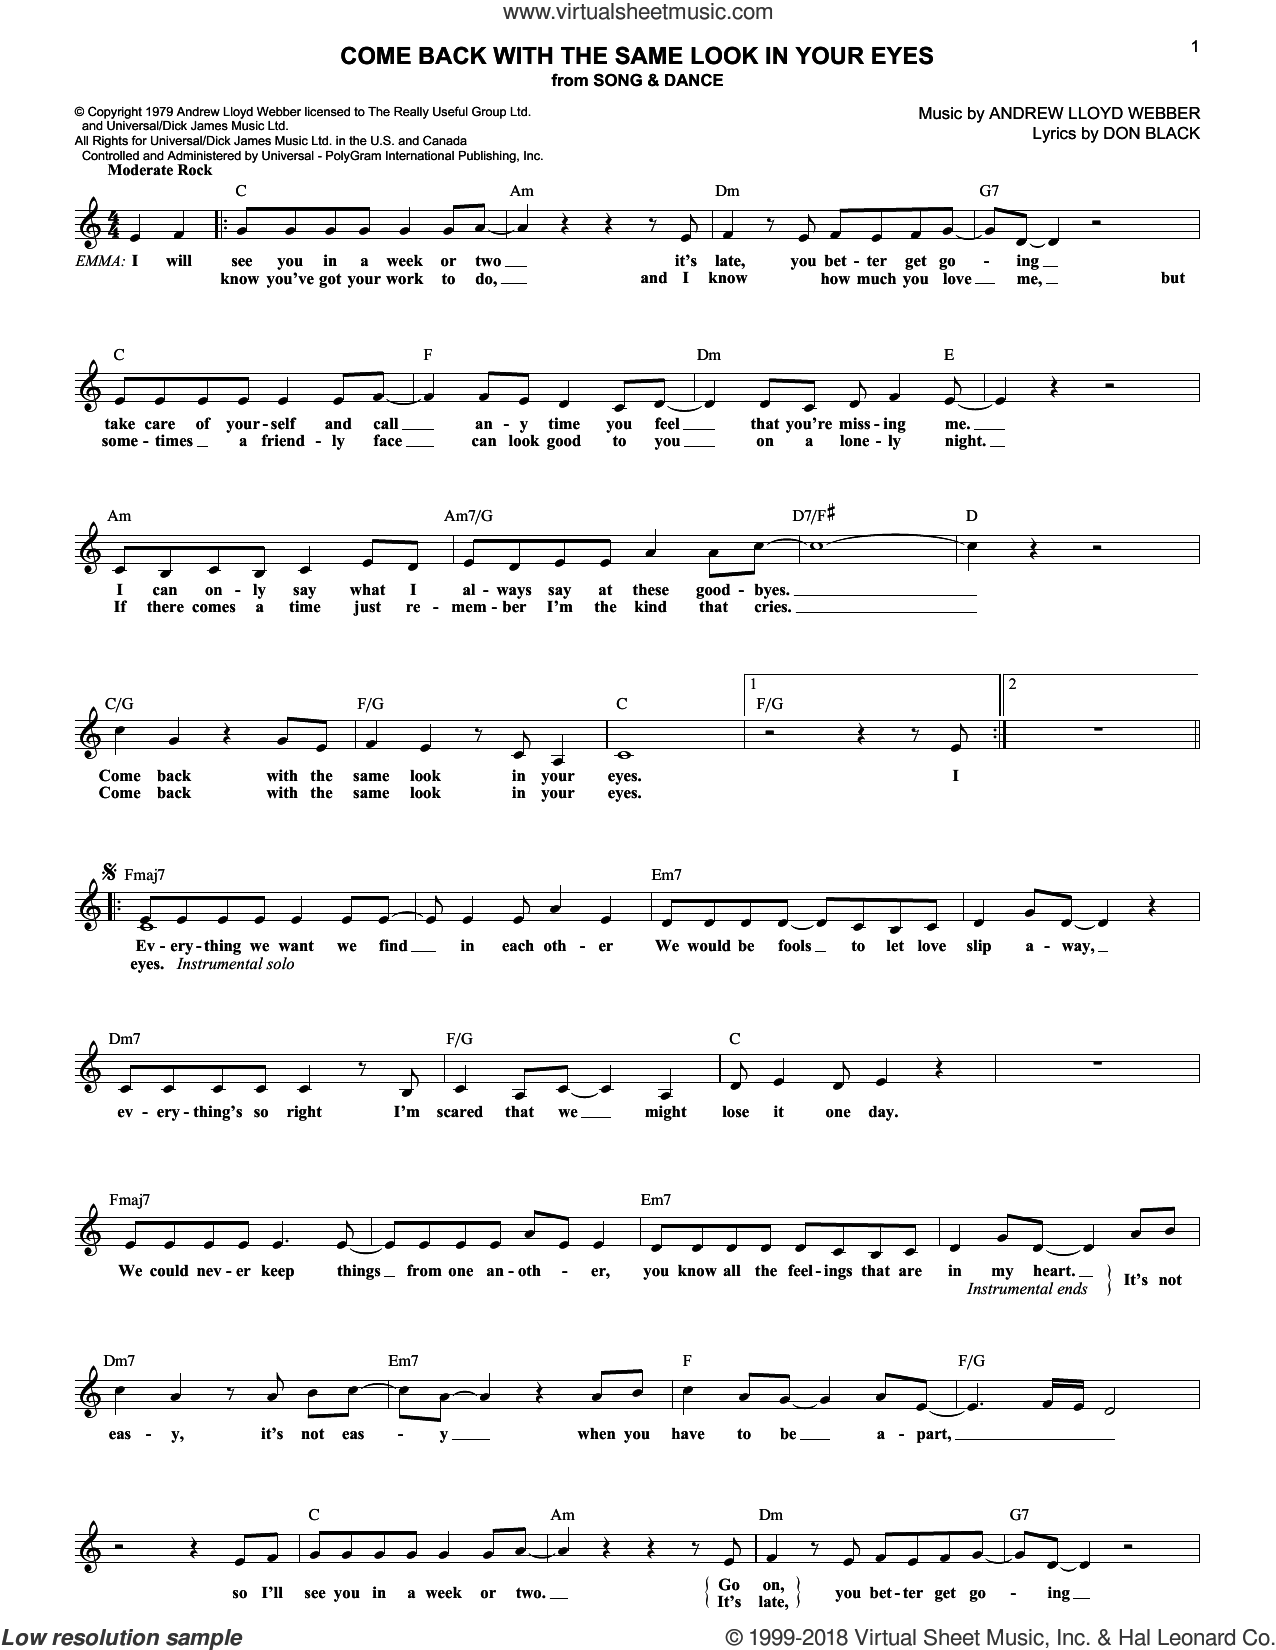 Come Back With The Same Look In Your Eyes sheet music for voice and other instruments (fake book) by Andrew Lloyd Webber, Song And Dance (Musical) and Don Black, intermediate